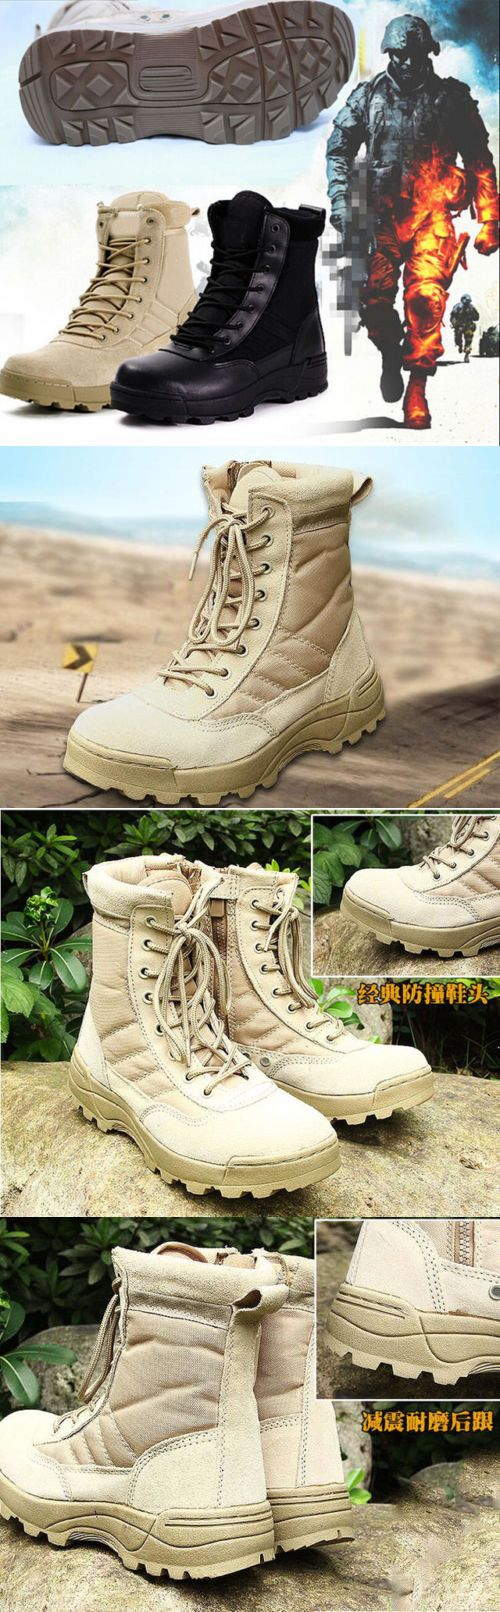 Tactical Footwear 177897: 7158 Men S Special Forces Military Boots Us Army Boot Swat Tactical Combat Shoes -> BUY IT NOW ONLY: $31 on eBay!